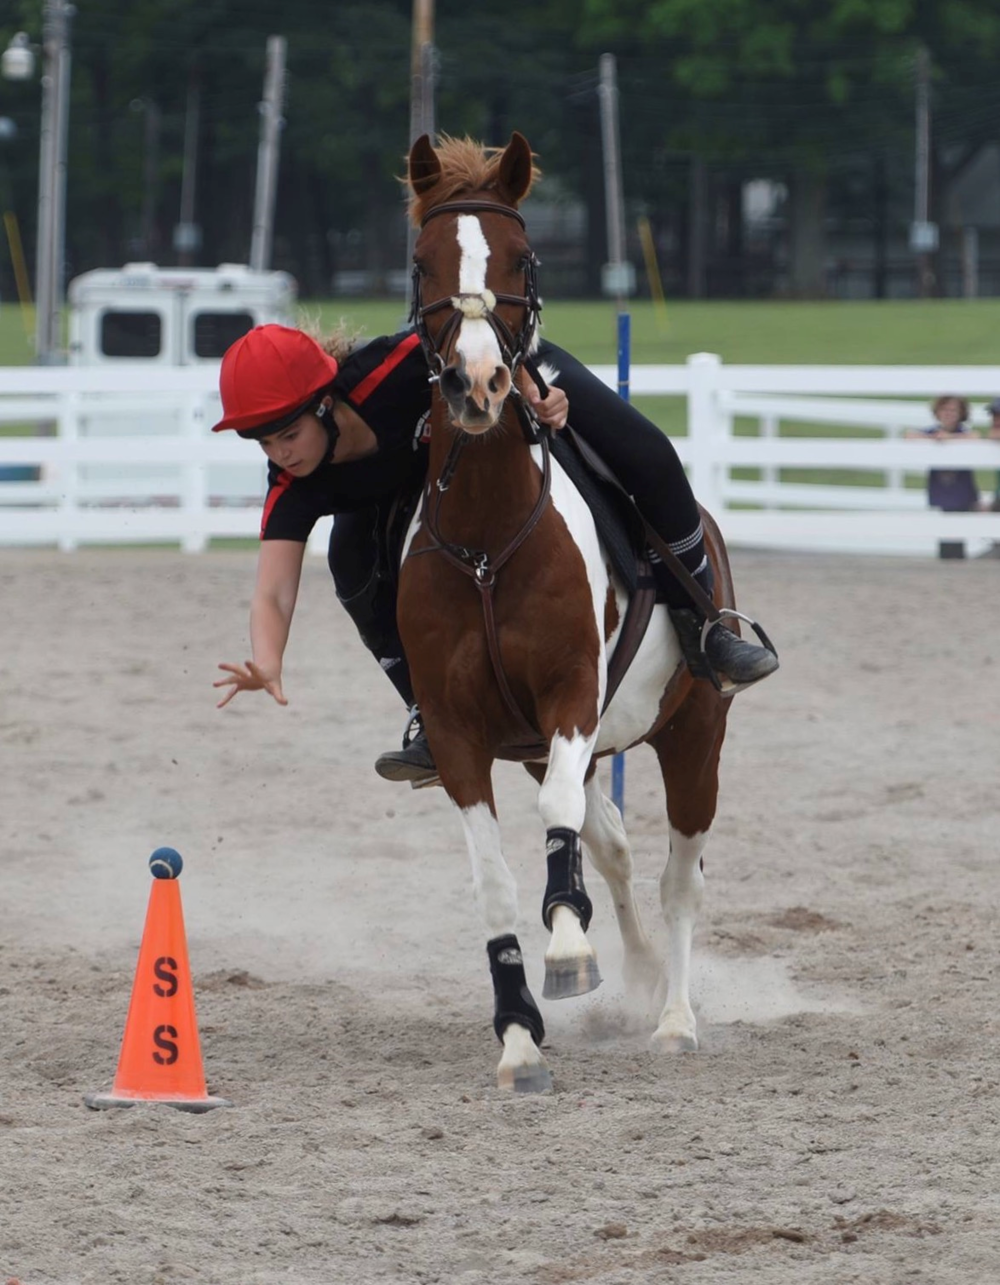 Mercedes Weber   Mercedes began riding at age 11, and joined Pony Club where she was introduced to Mounted Games. In 2014 she represented Canada at IMGE held in the United Kingdom, and in 2015 she competed at the U17 WTC held in Florida. She was the alternate for the 2016 WTC in Ireland.